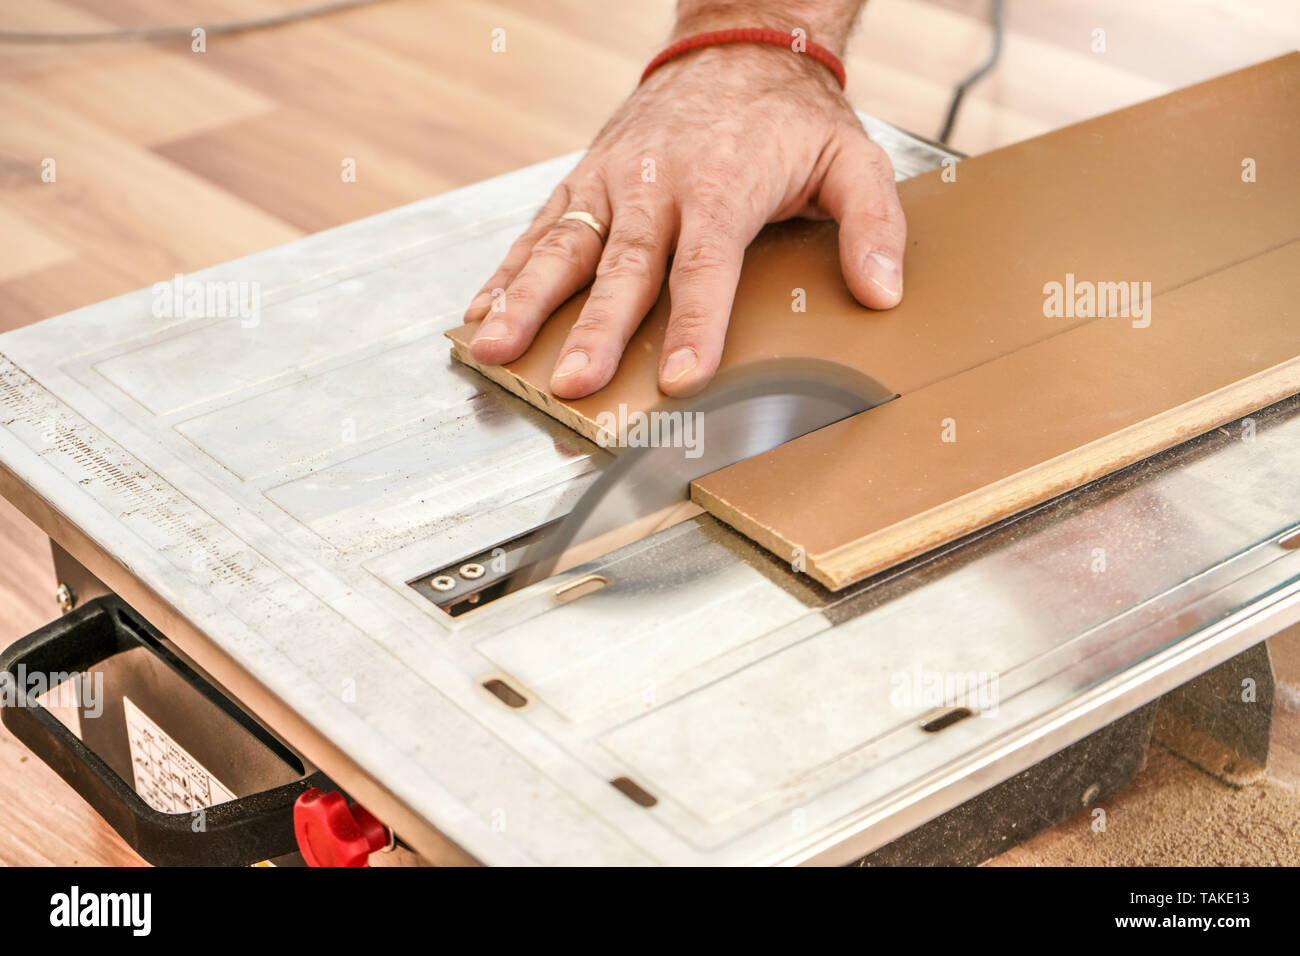 Man Cutting Laminate Floor Boards On Circular Saw Detail On Hands